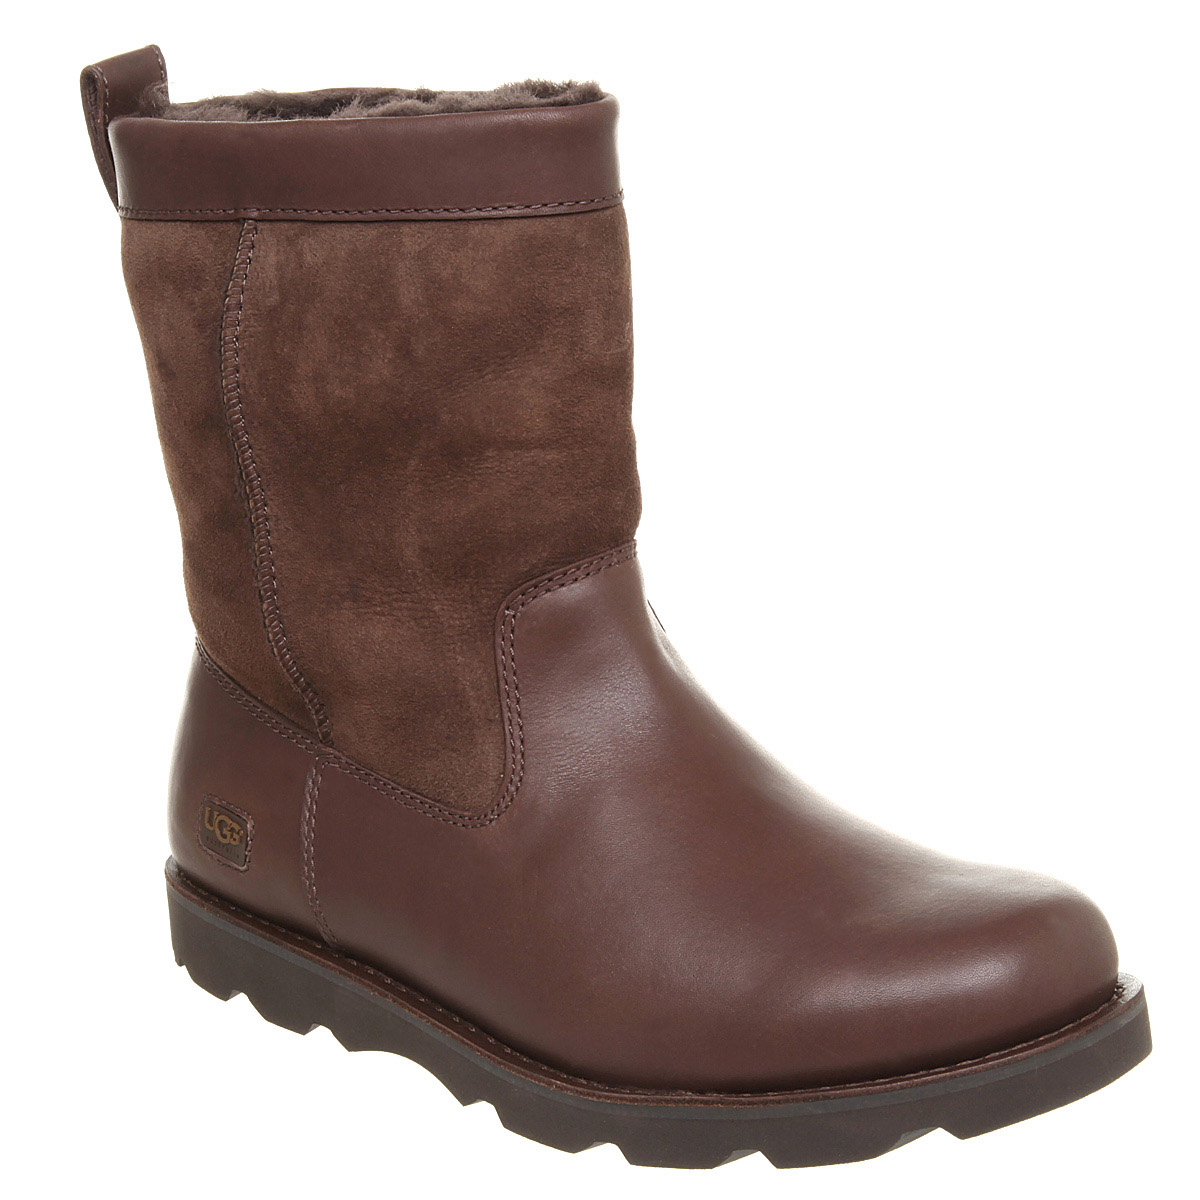 Find great deals on eBay for men's ugg boots. Shop with confidence.